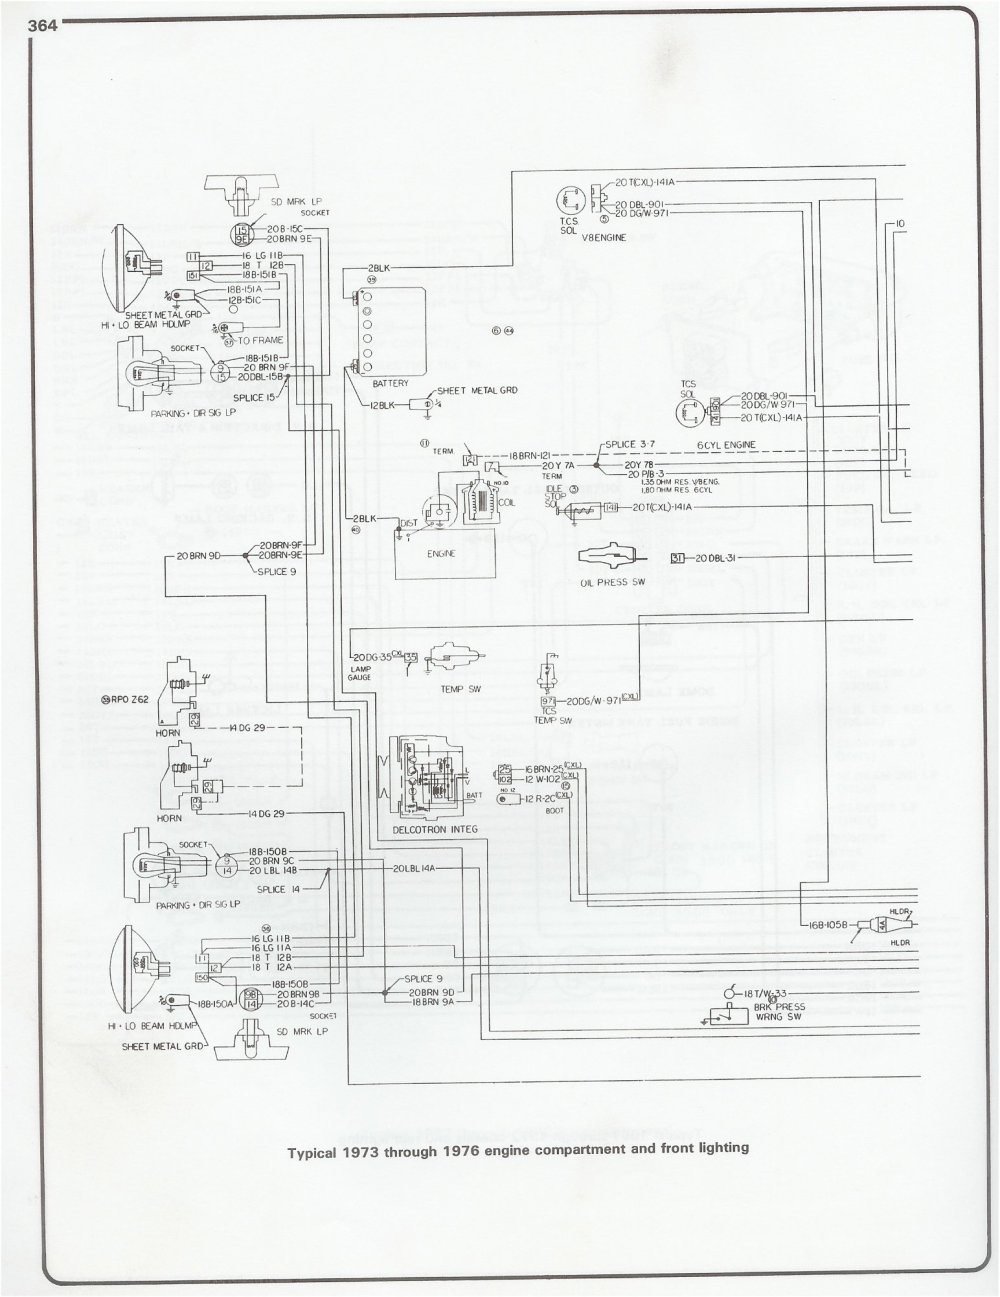 medium resolution of 1976 ford f100 wiring diagram